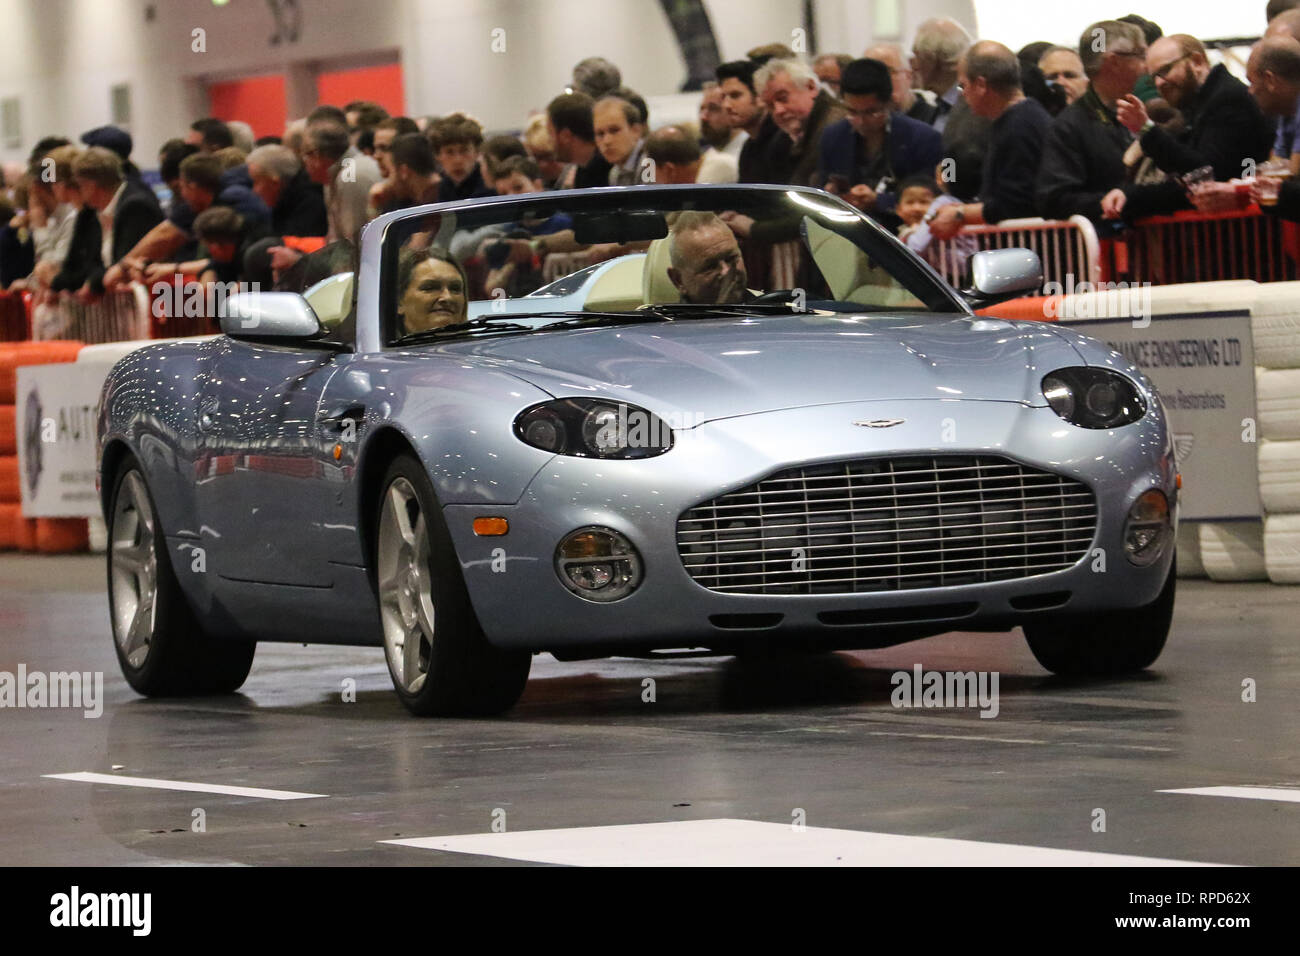 Aston Martin Db7 High Resolution Stock Photography And Images Alamy